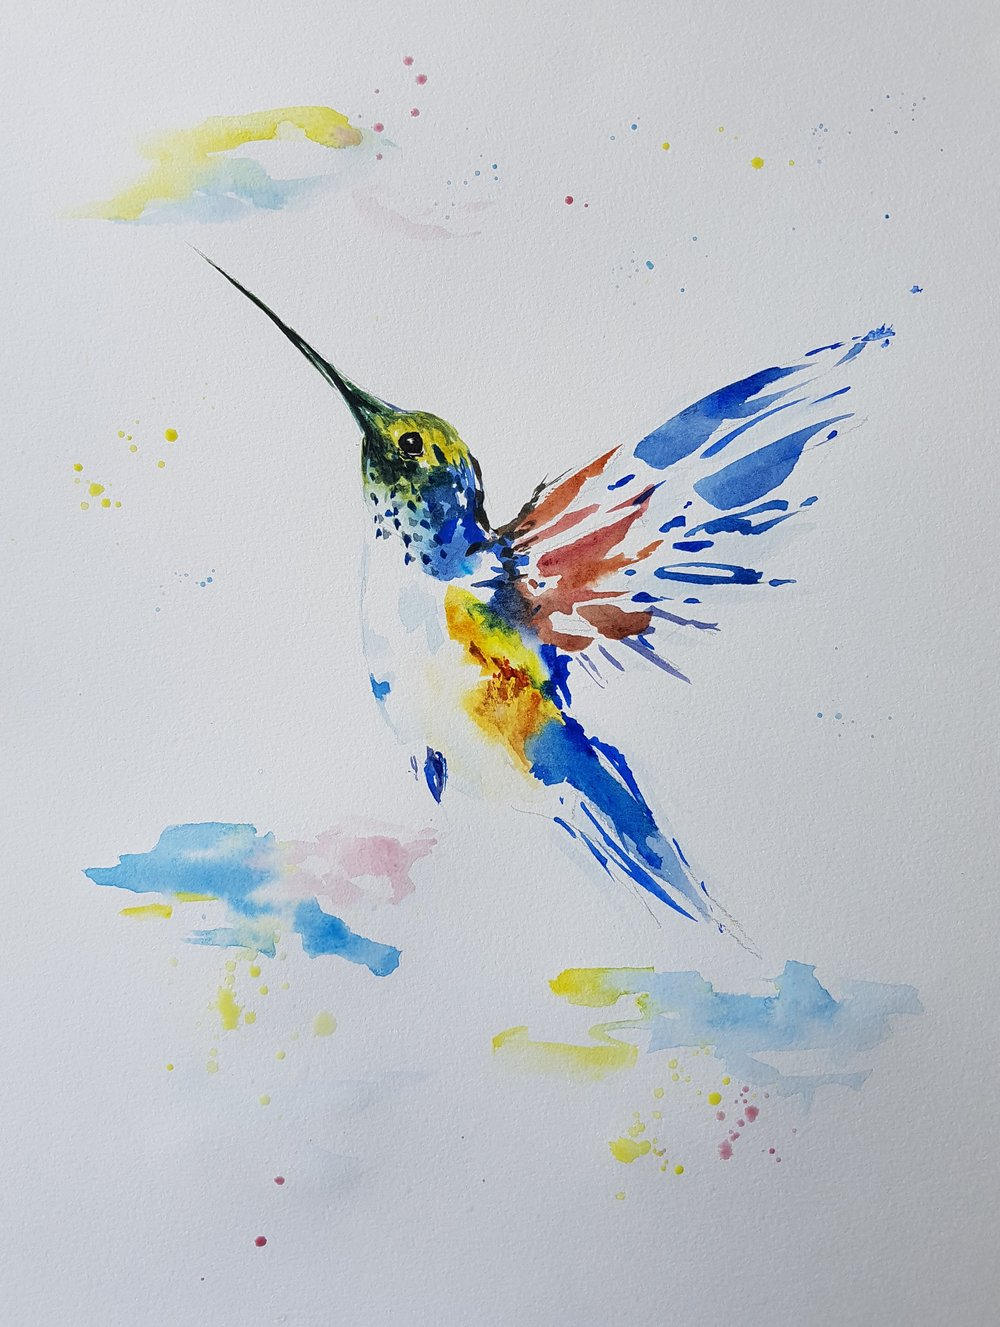 """Colibrí"" 11x8.5"" [SOLD]  I painted this as an exercise in minimalist strokes. After looking at what were the most essential parts of the reference photo, I tried to paint as little of the original as possible."